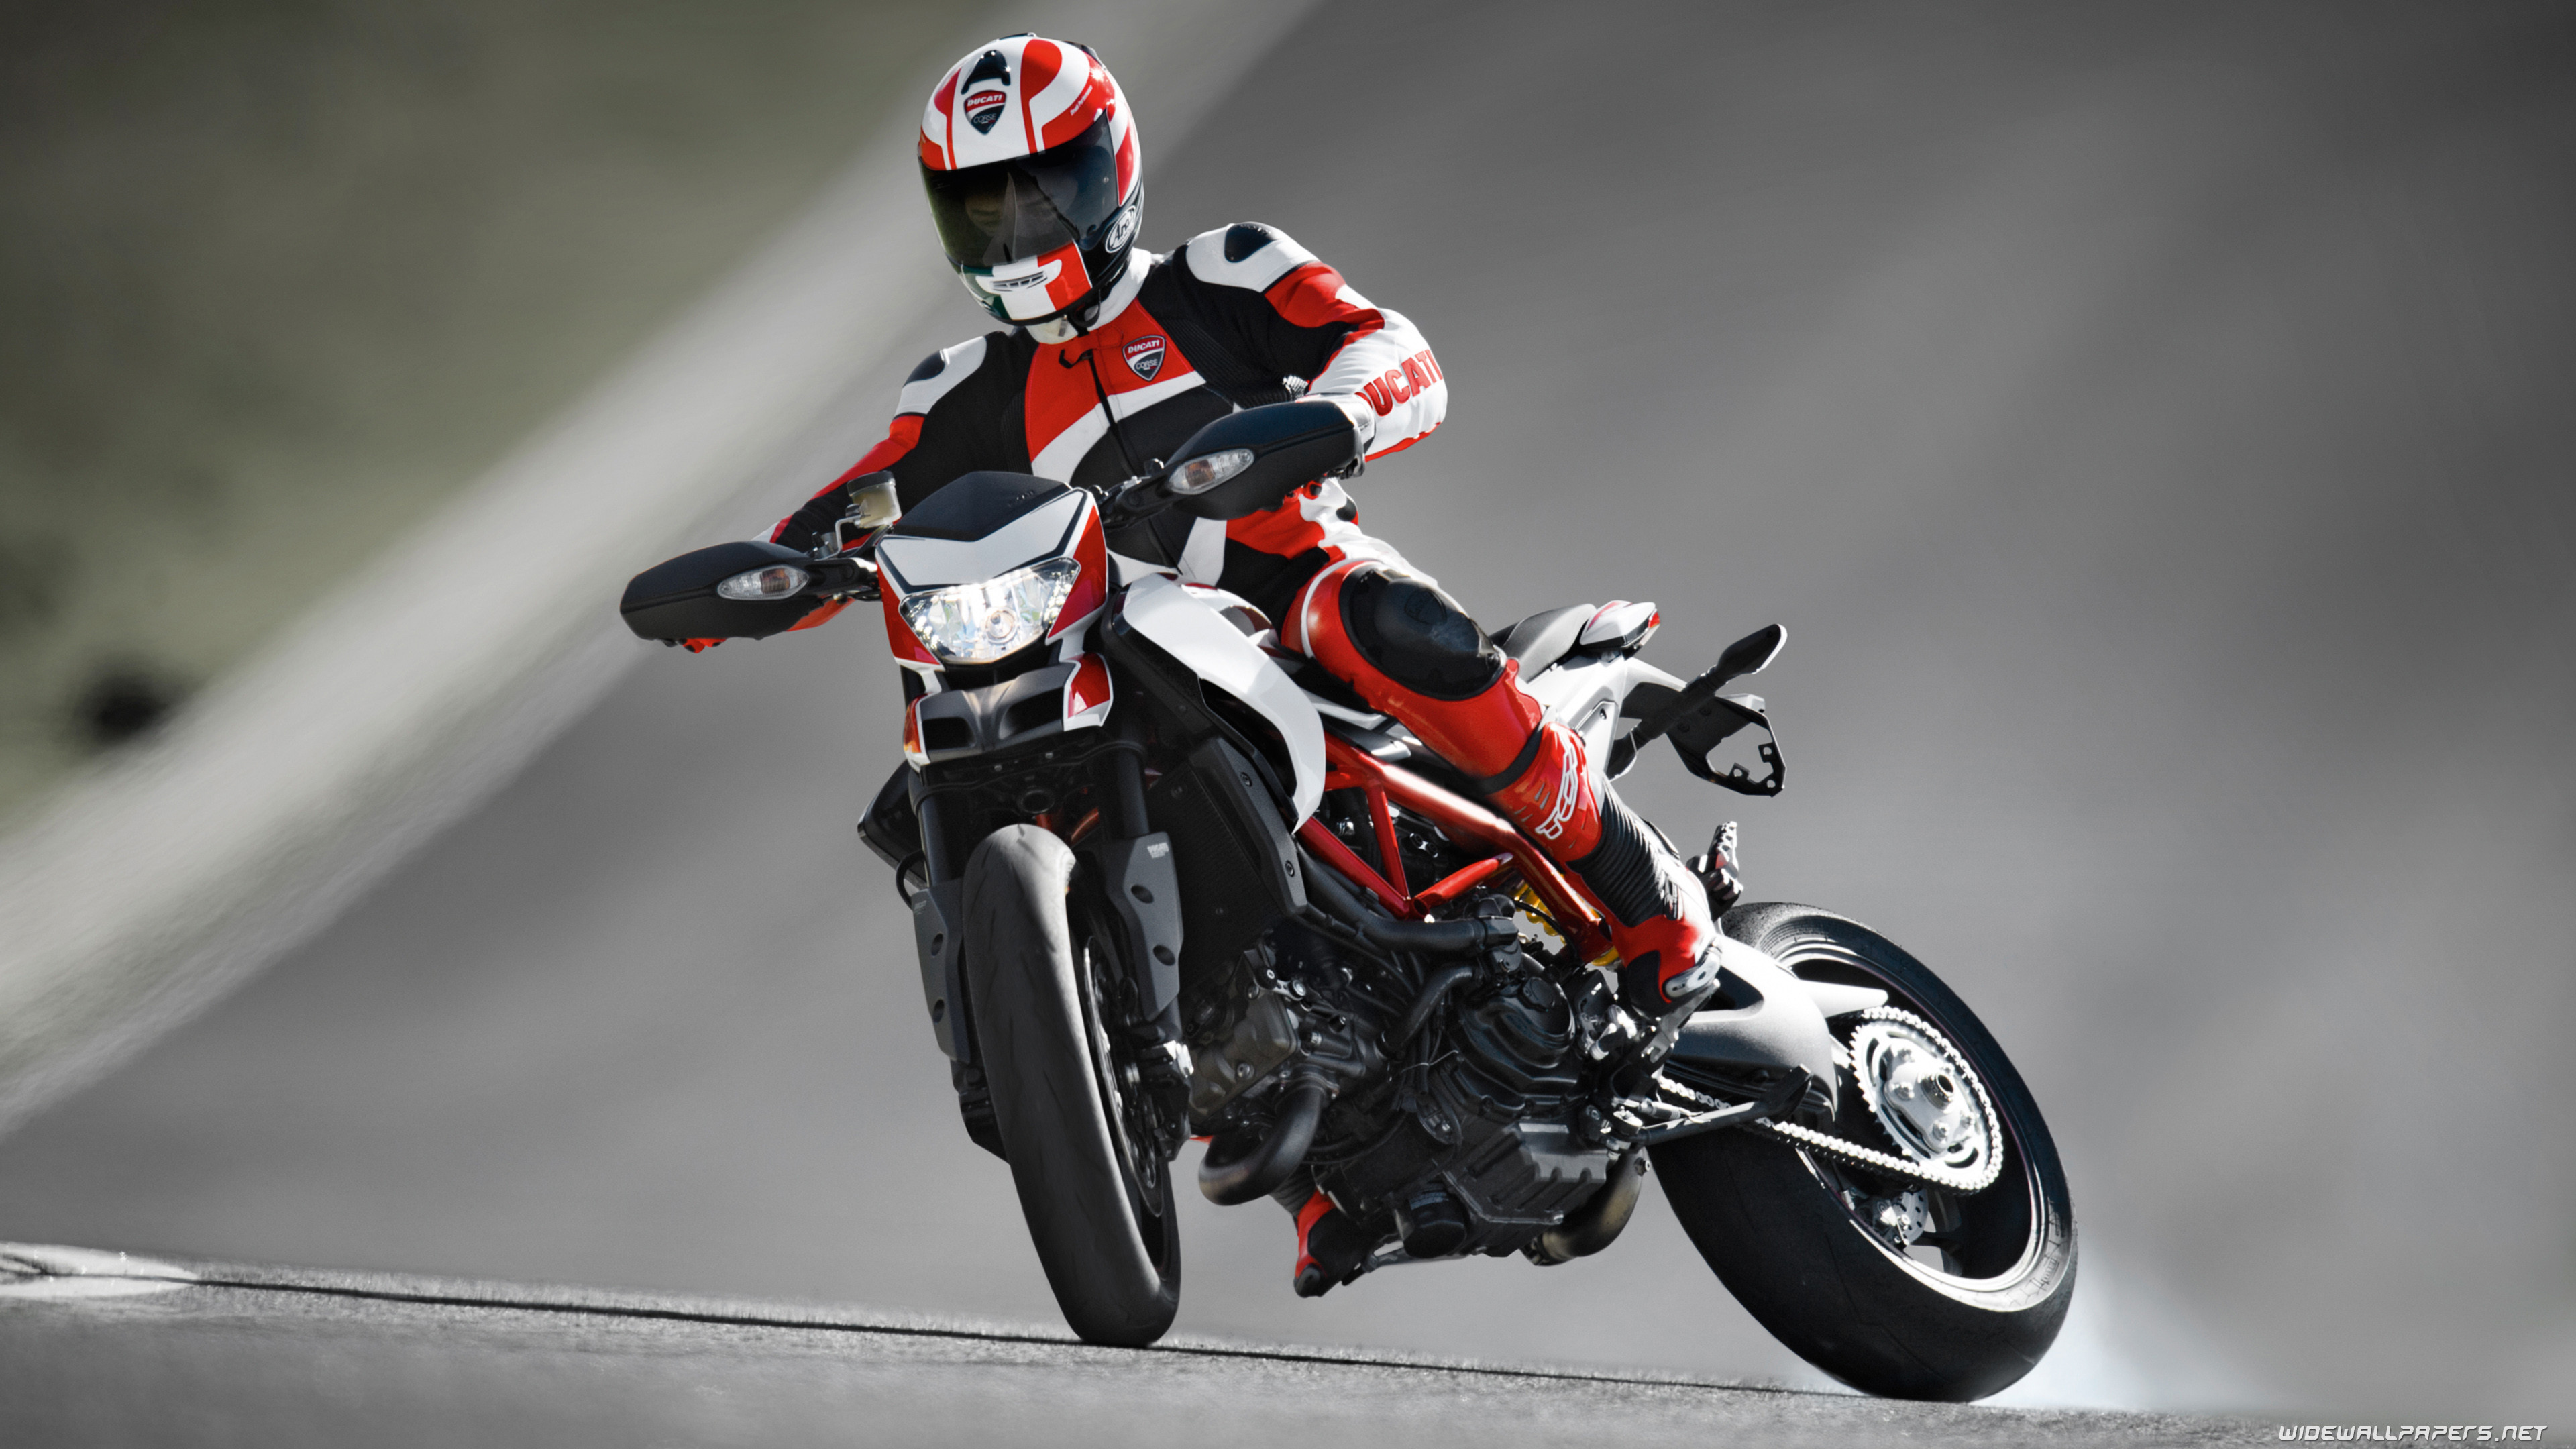 Supermoto Wallpapers 65 Images